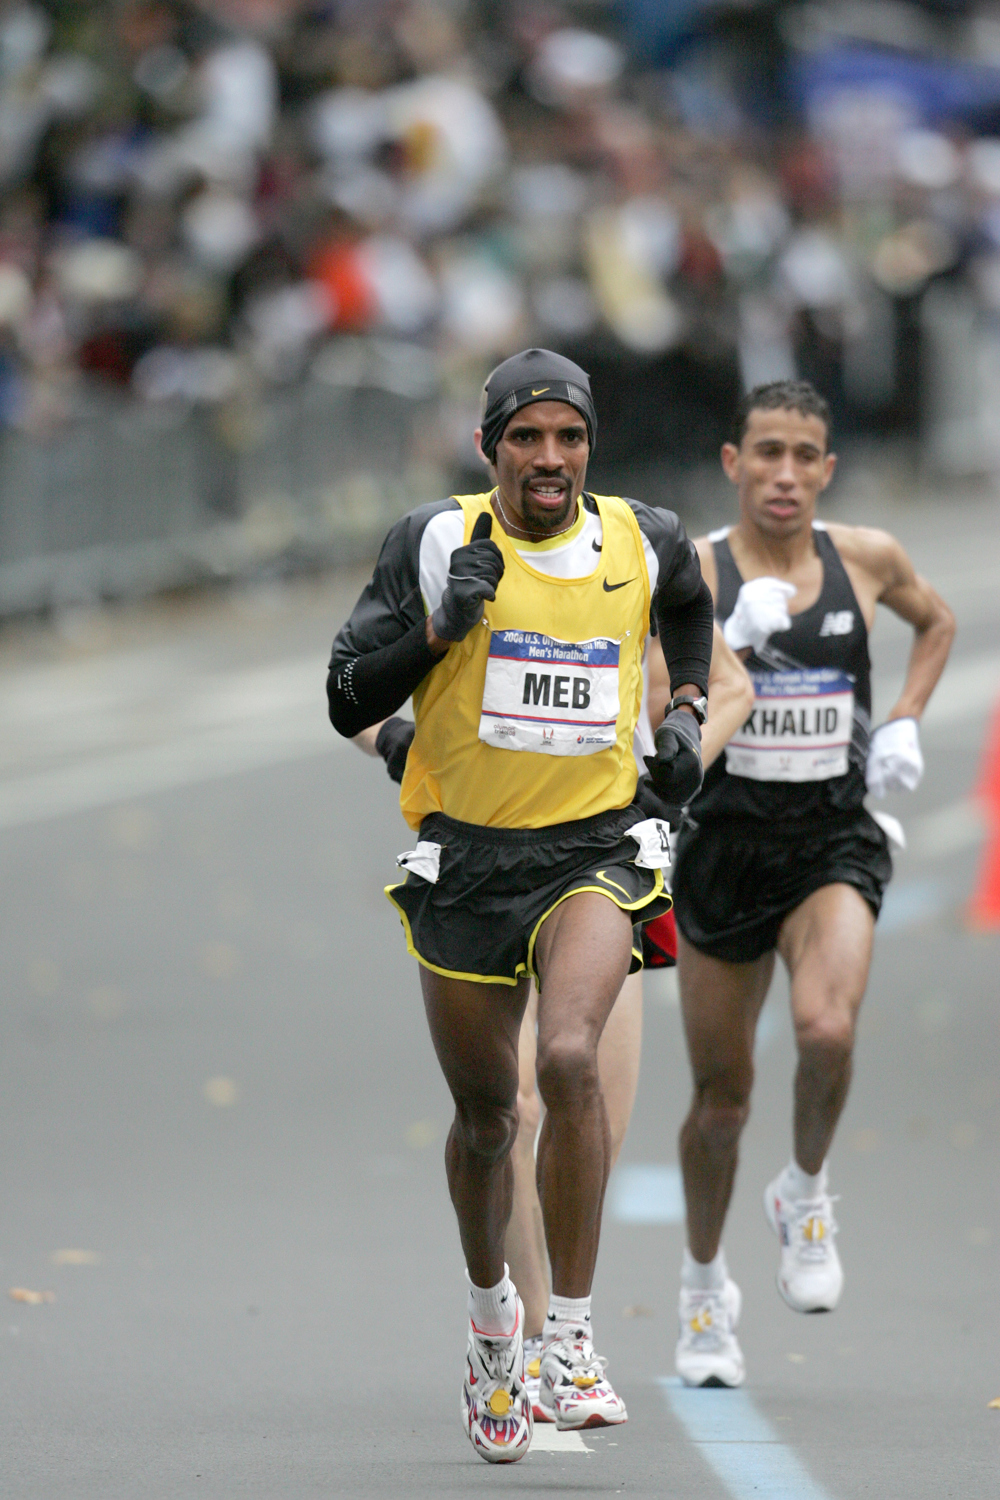 Keflezighi competing in Central Park at the 2008 U.S. Olympic Trials Marathon.